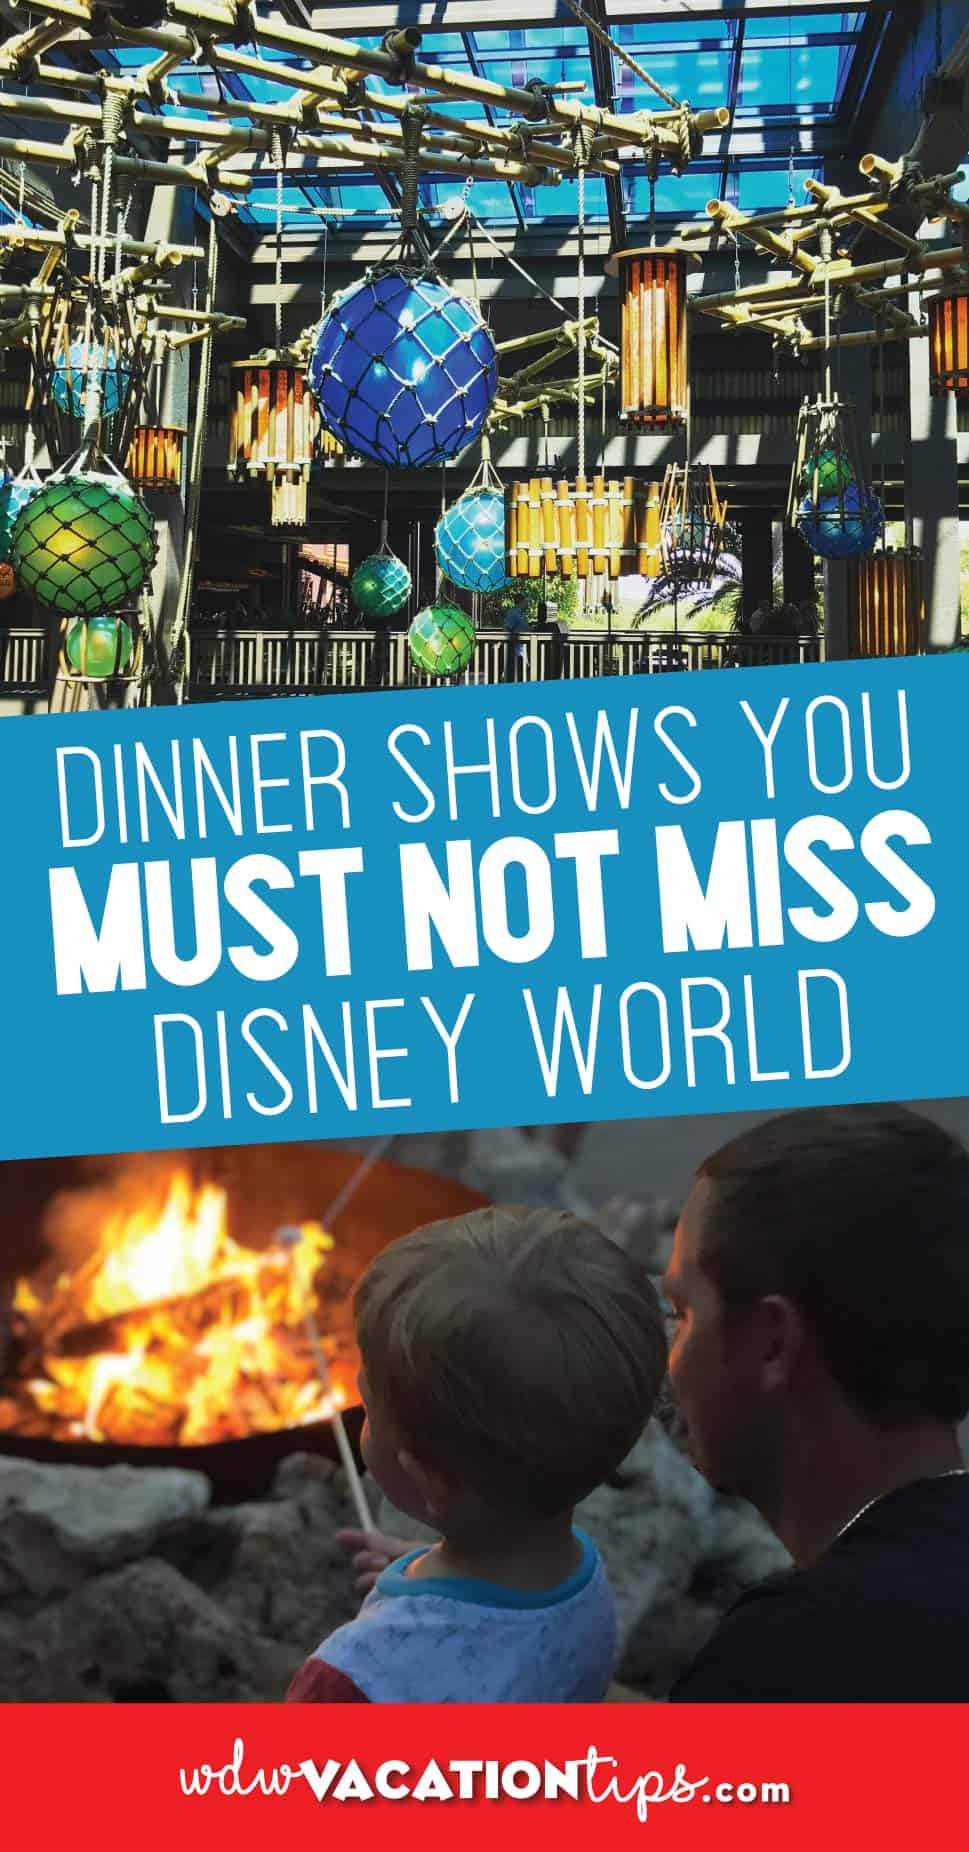 Disney World Dinner Shows